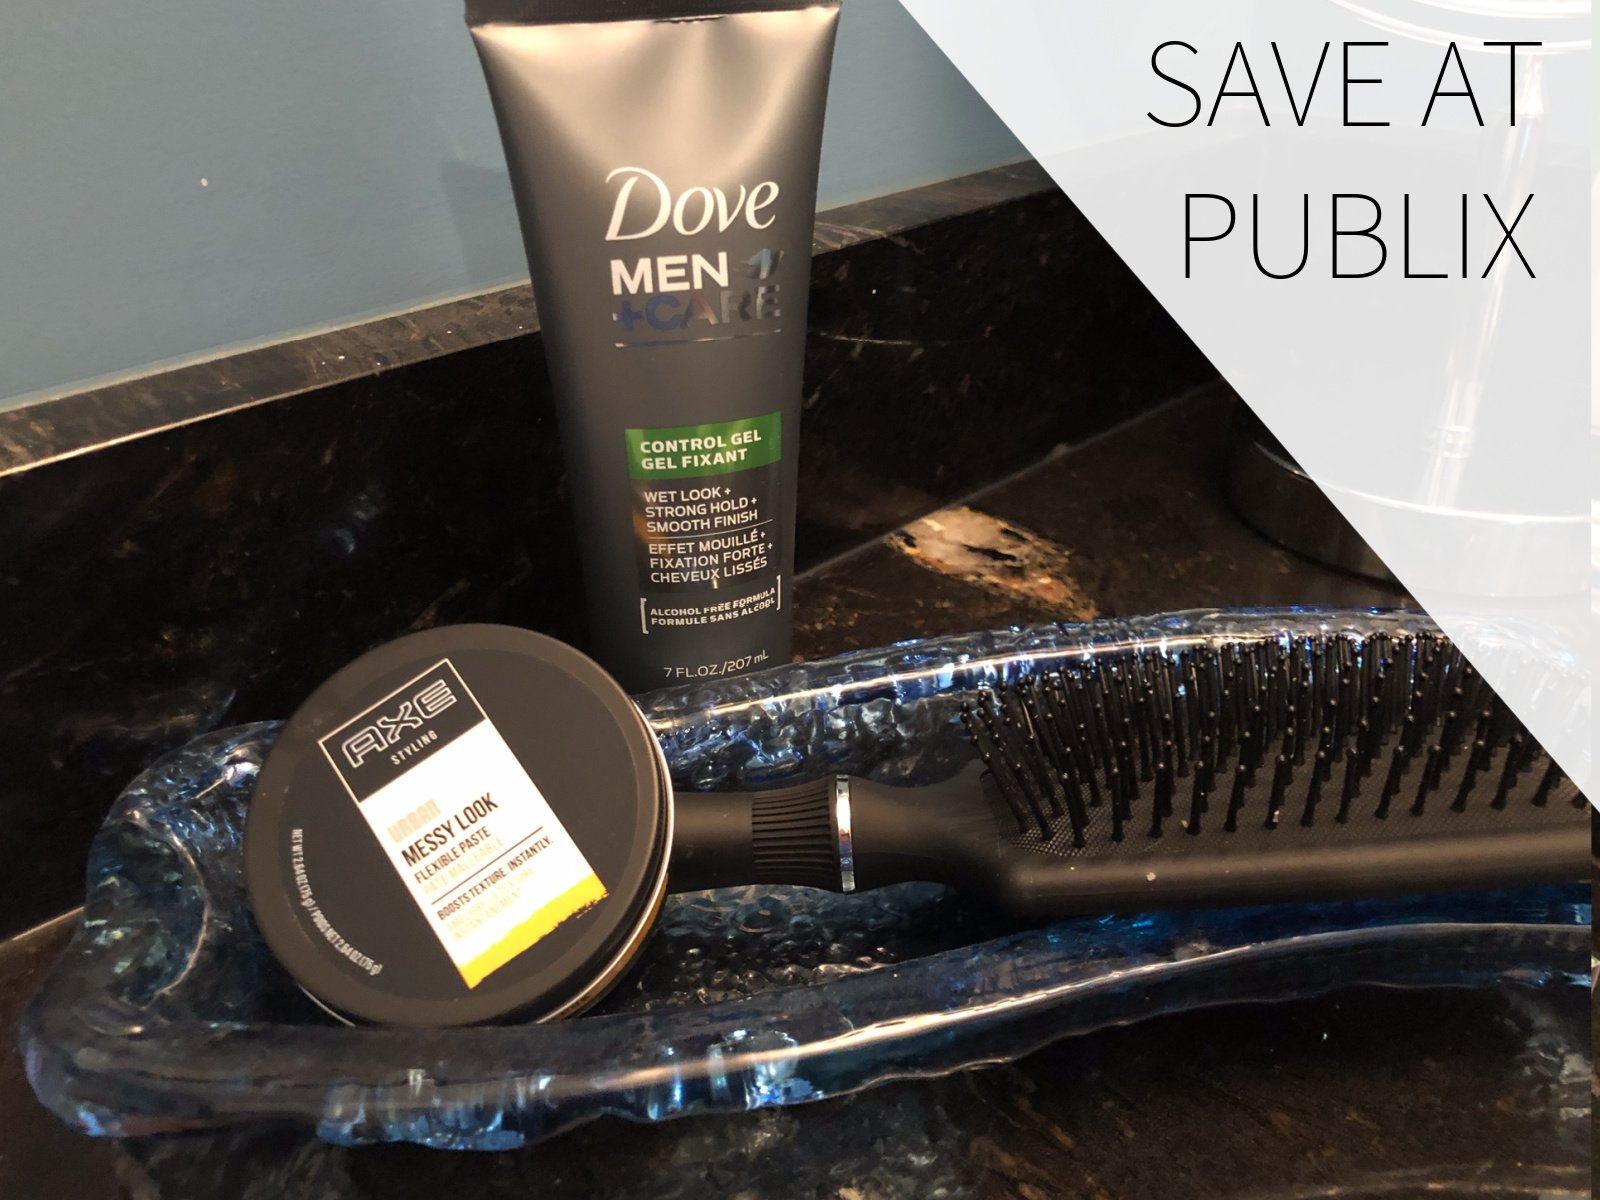 Great Deals On Your Favorite Unilever Personal Care Products - Save Now And Have Handy When You Need Them! on I Heart Publix